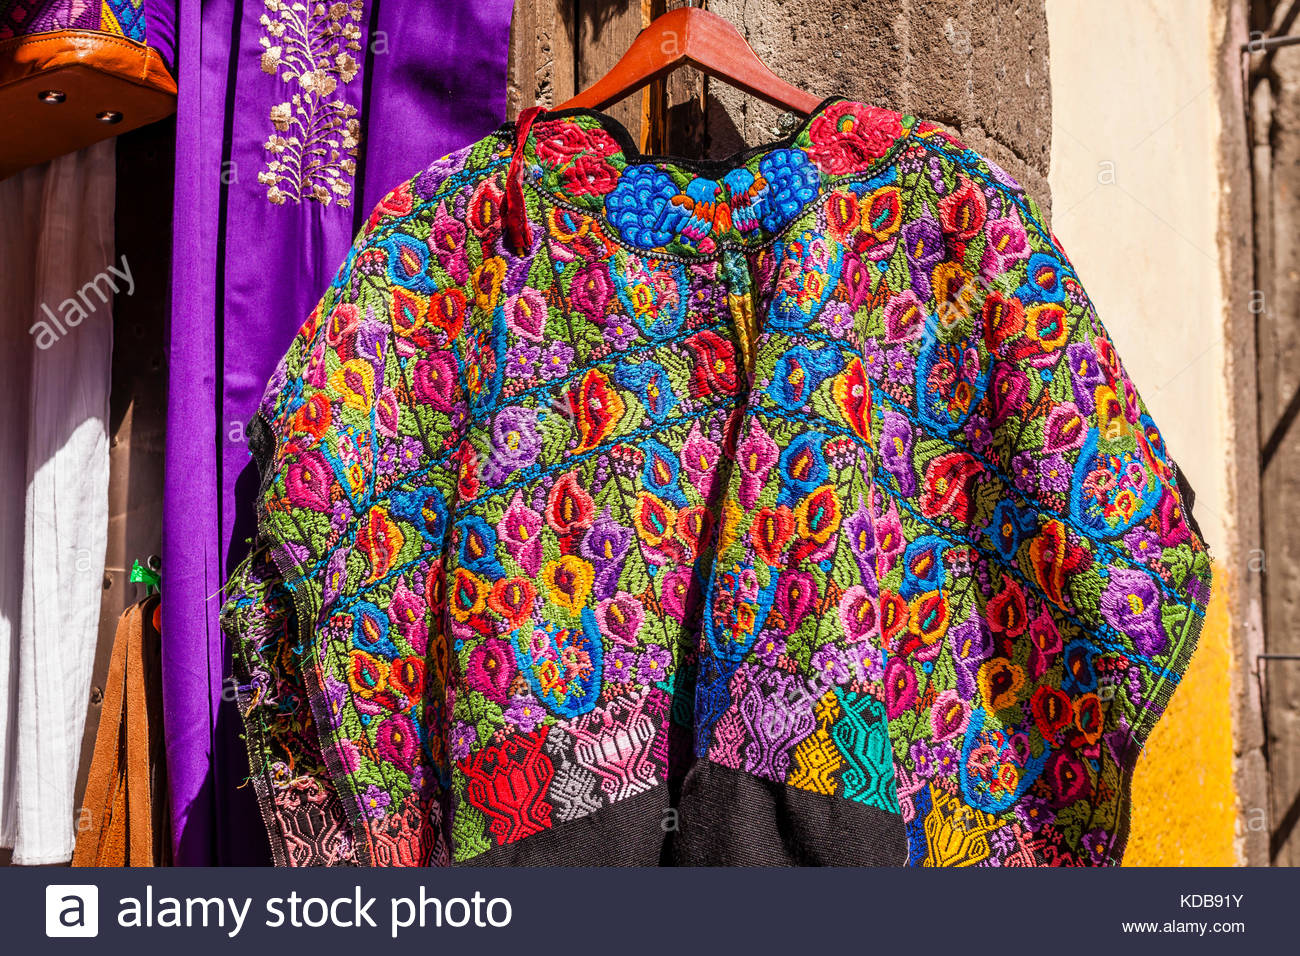 Colorful Fabric Poncho For Sale In Clothing Store Stock Photo